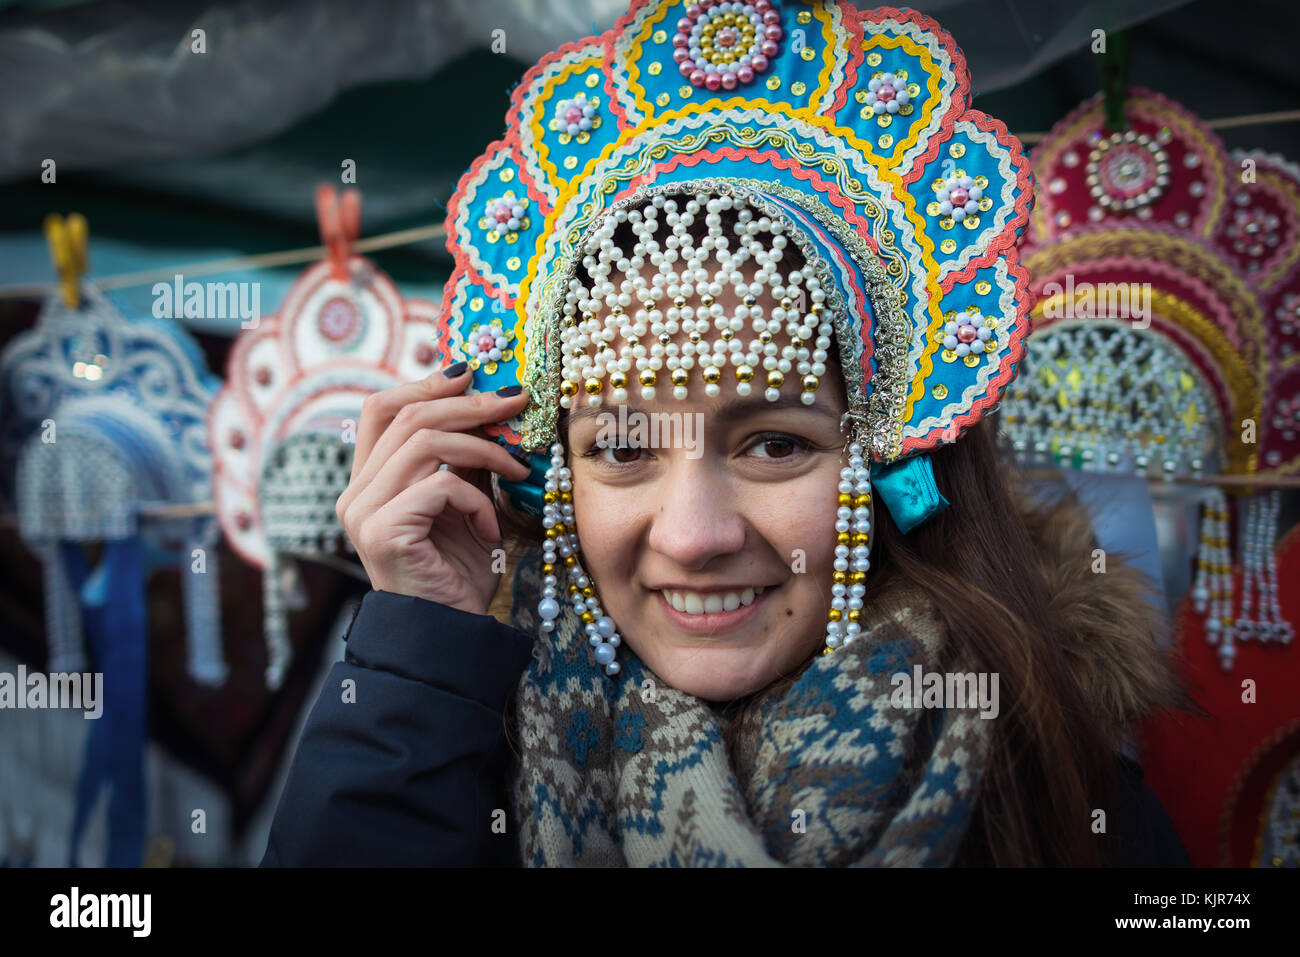 Cute and beautiful girl in warm and wool scarf smiling and standing at city market in national traditional headdress - Stock Image